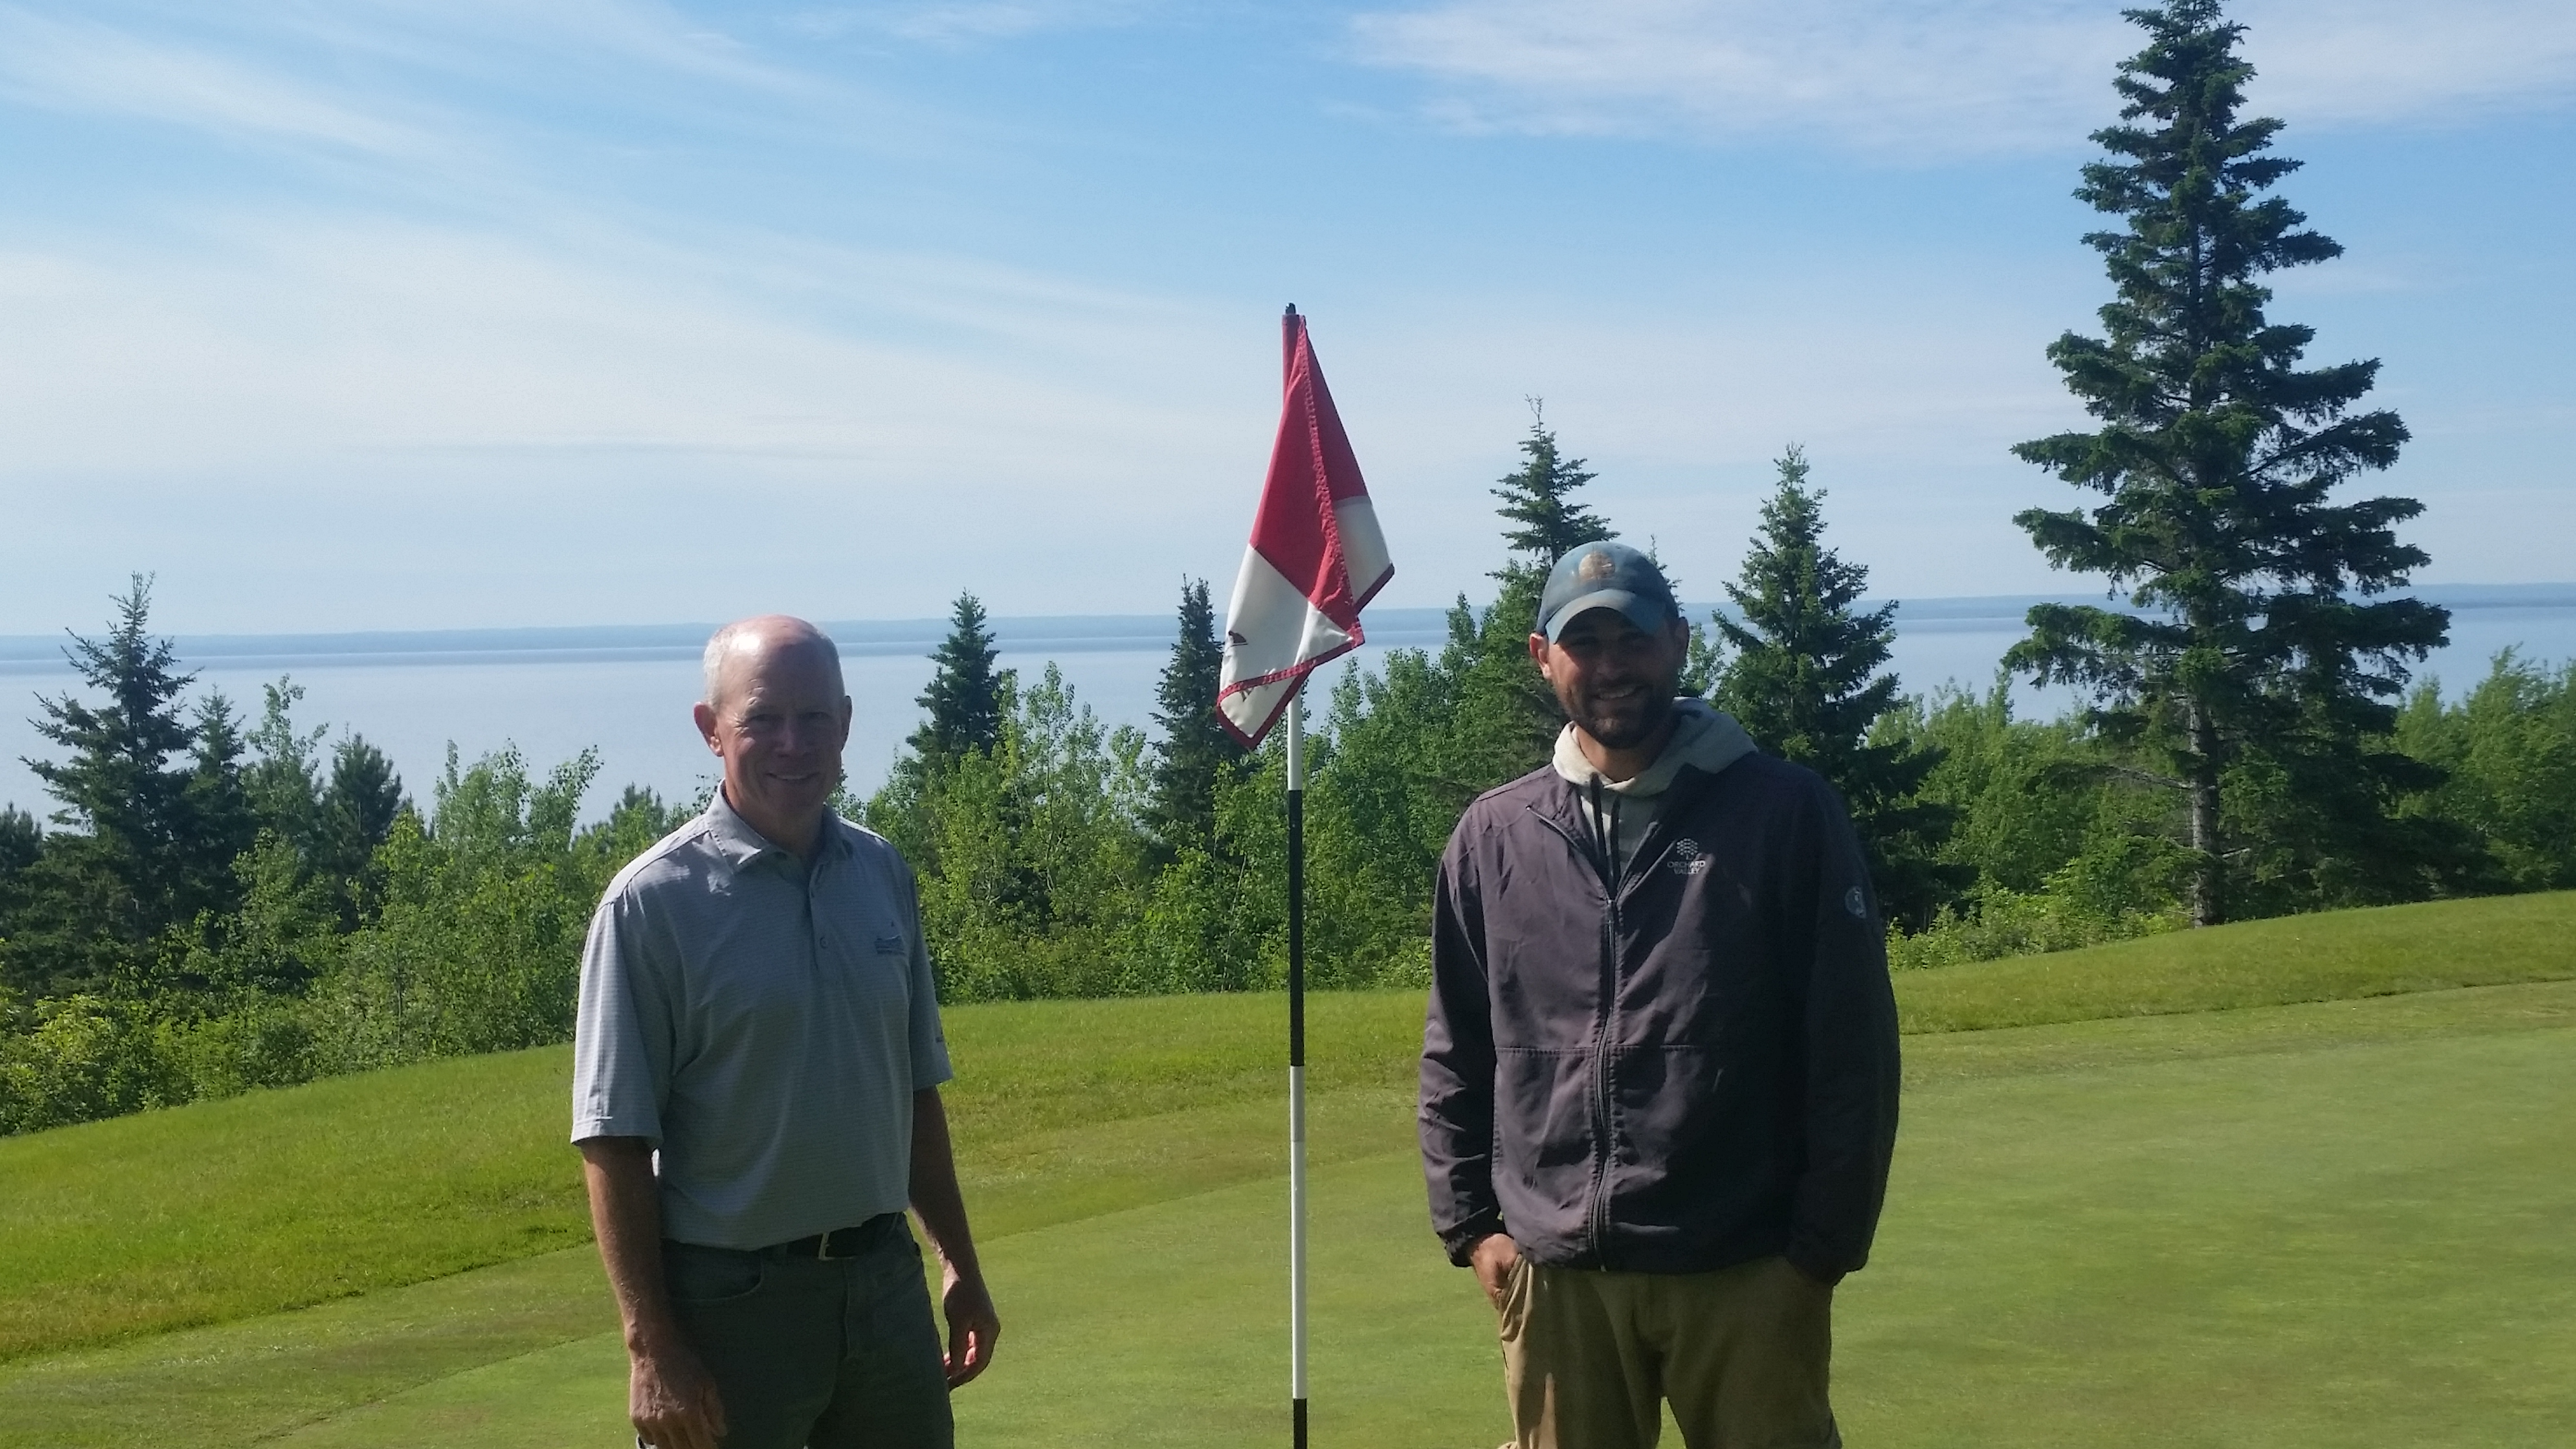 Dan and Dale at Lester Park Golf Course in Duluth, MN featuring green grass, a golf flag, pine trees and lake superior in the background.